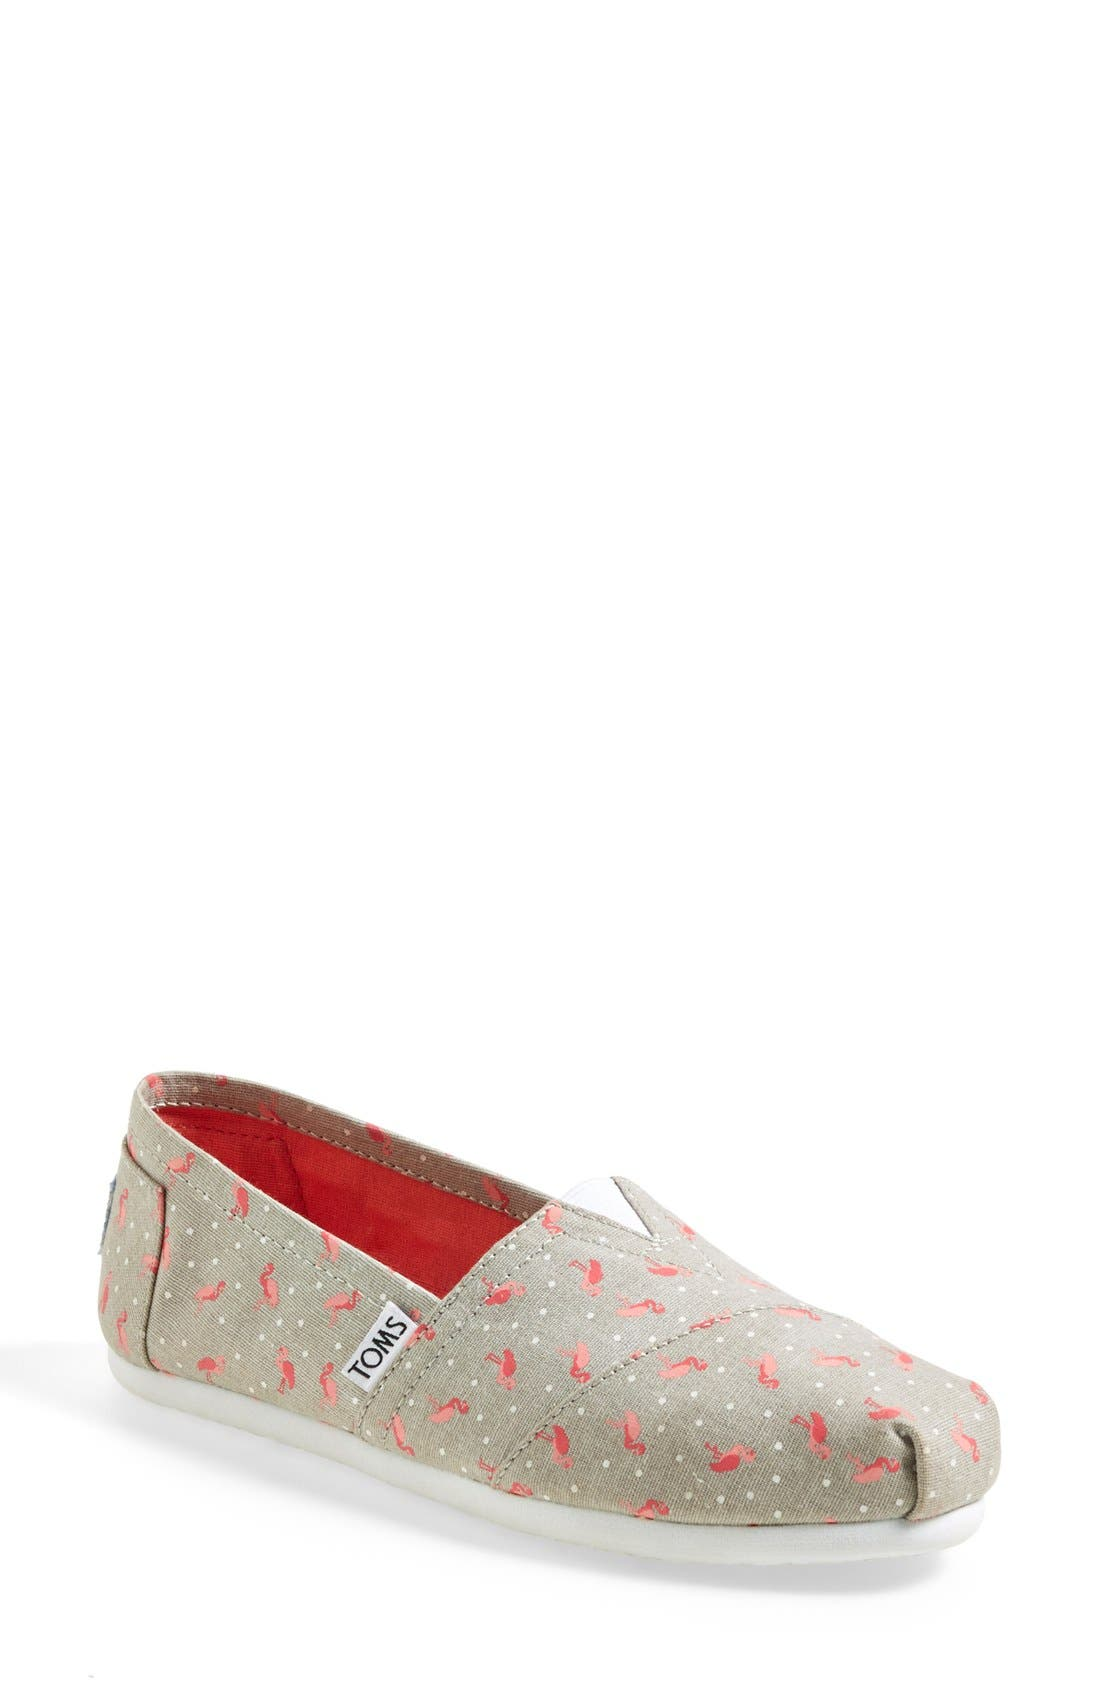 'Classic - Flamingo' Alpargata Slip-On, Main, color, 020